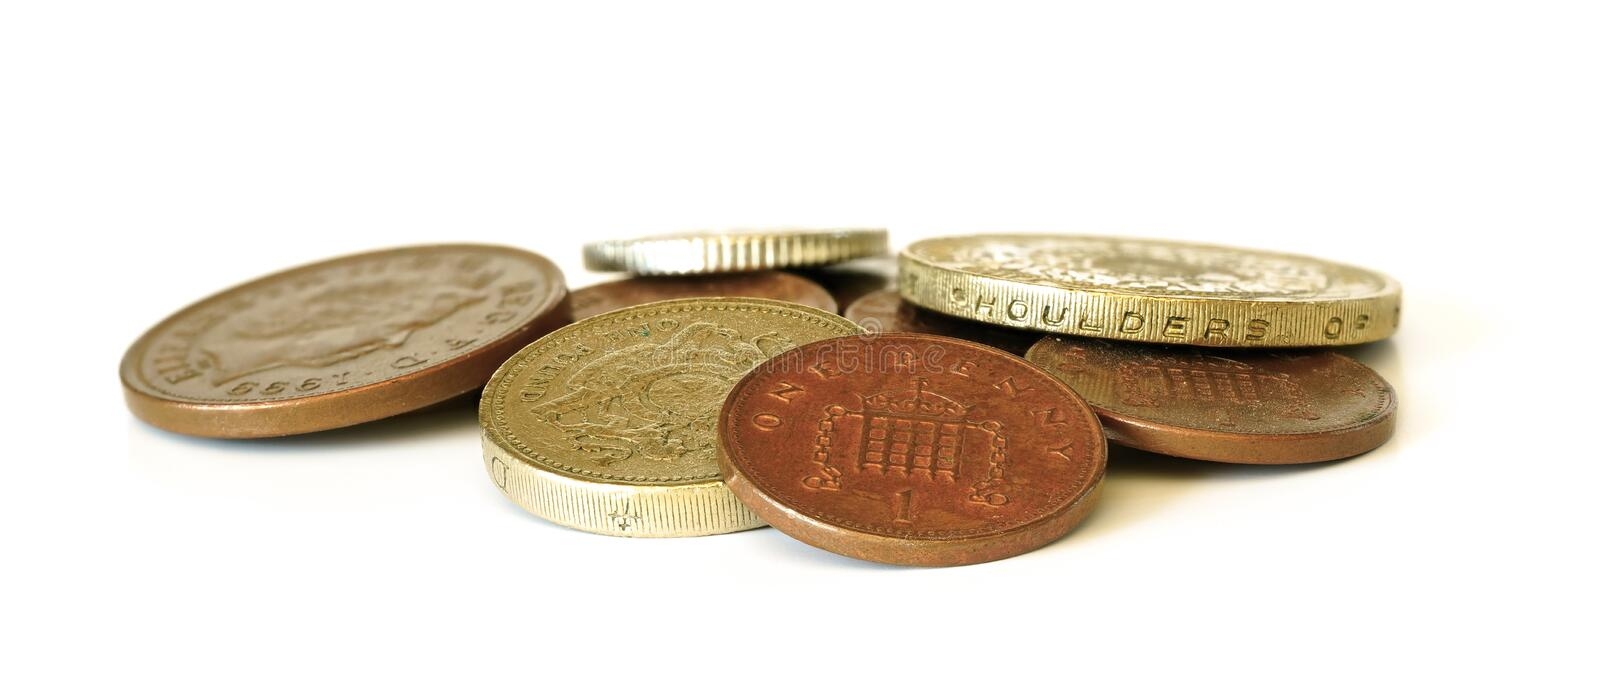 Small pile of British coins isolated on white background, closeup detail royalty free stock image